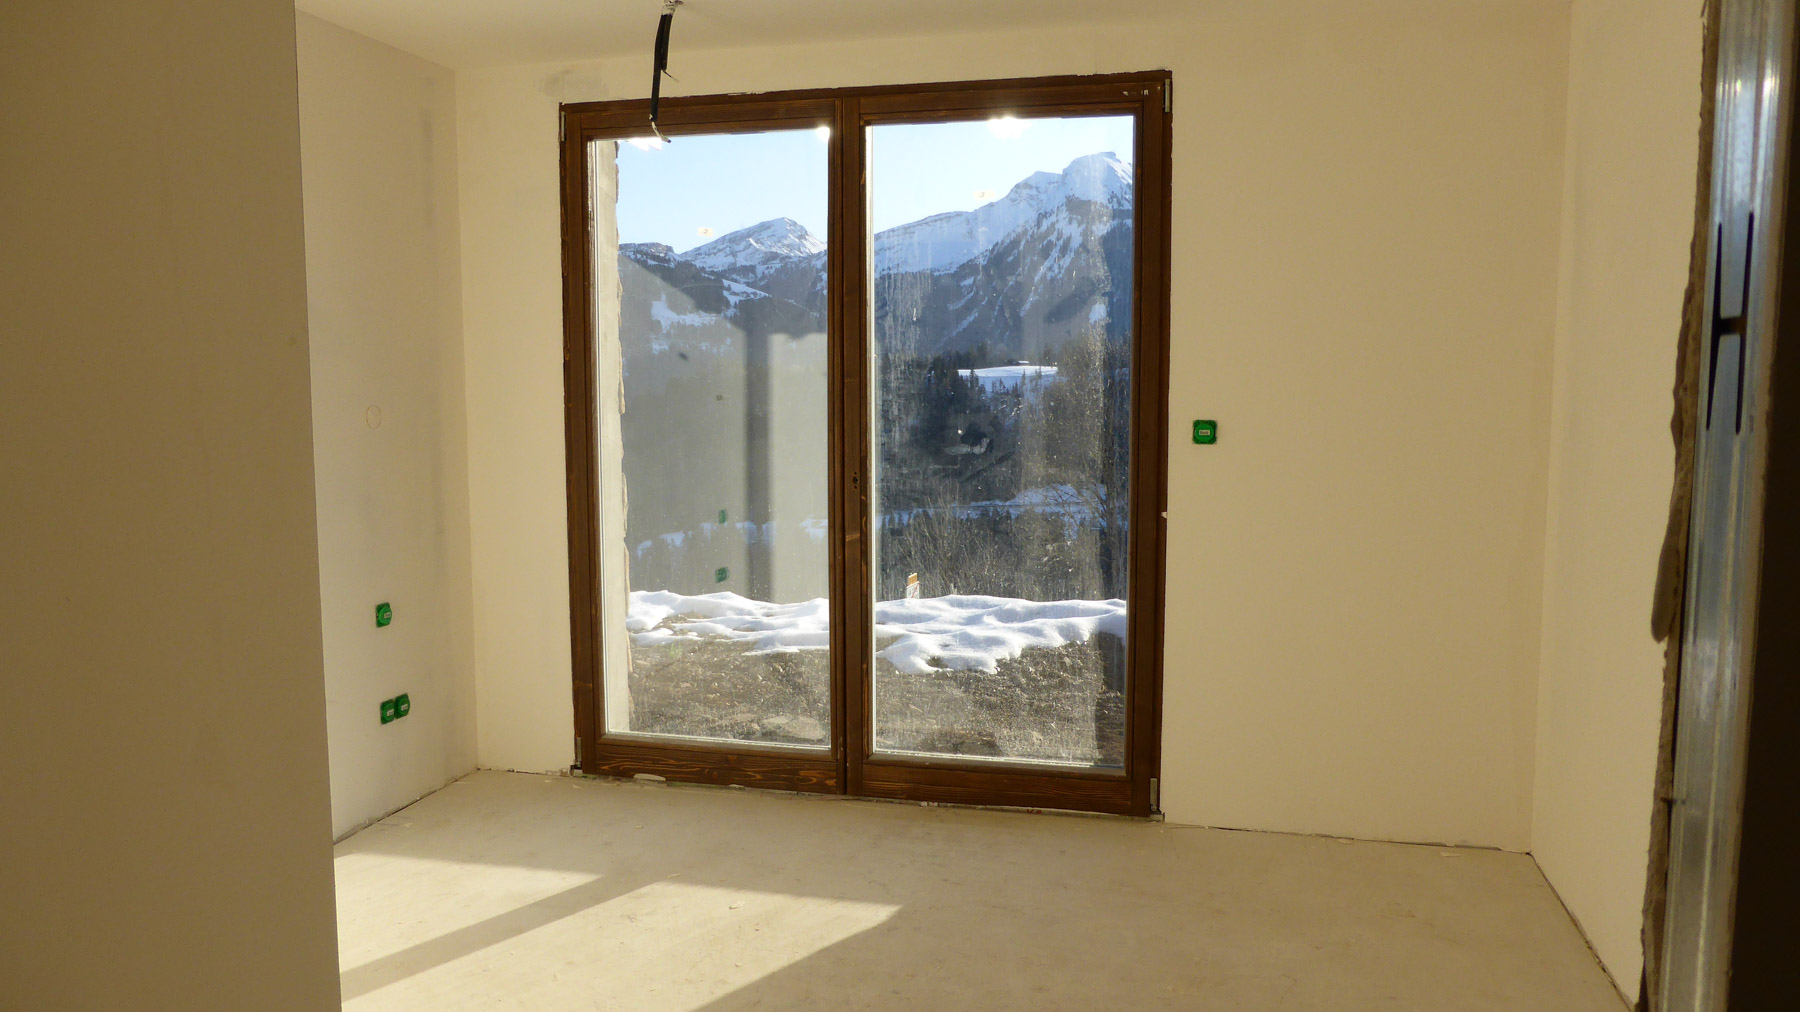 Cote MH New Chalet Bedroom